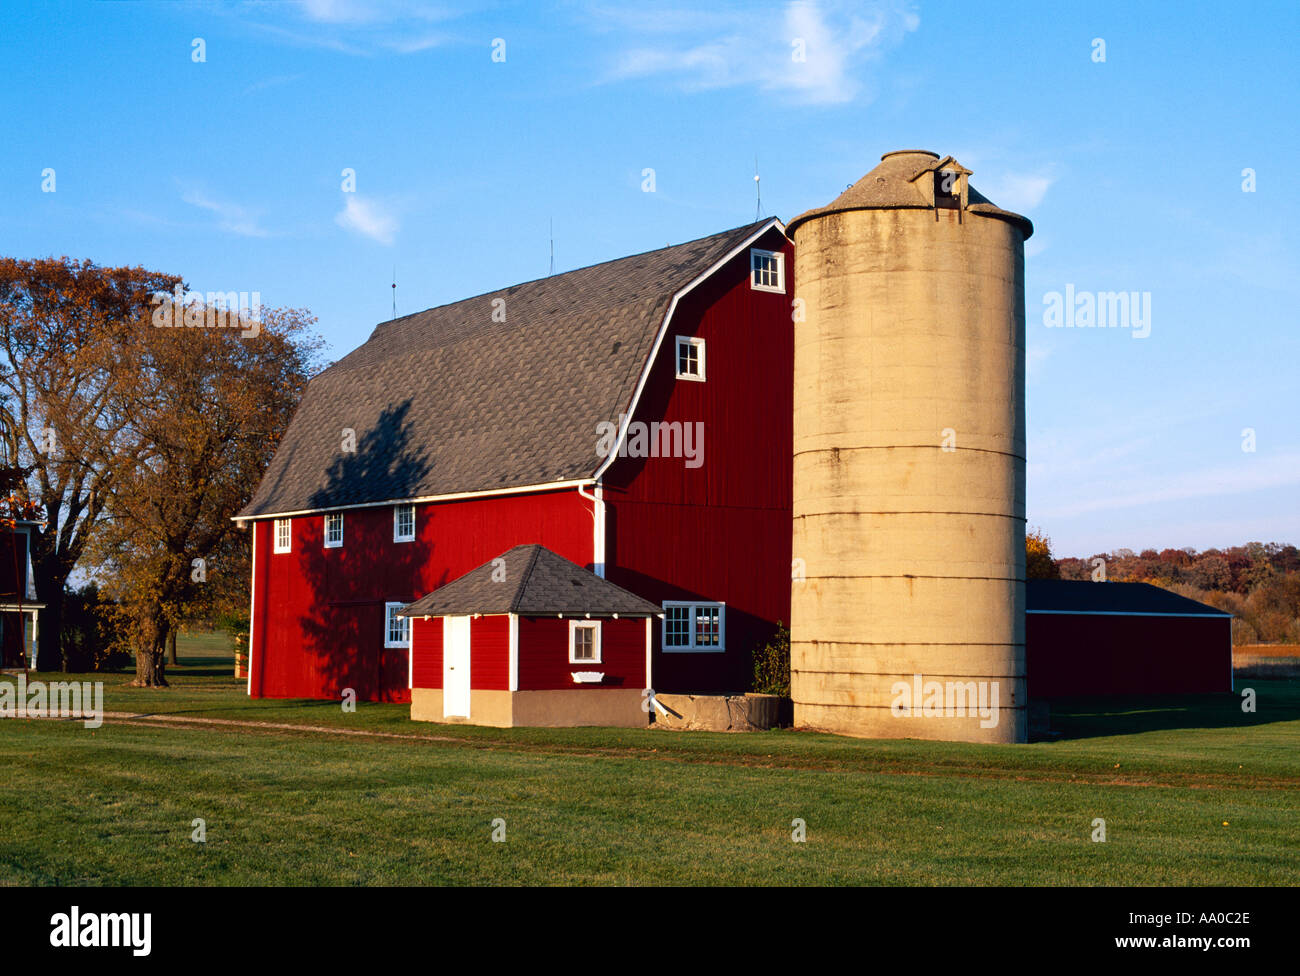 agriculture red barn and silo in autumn with green lawn